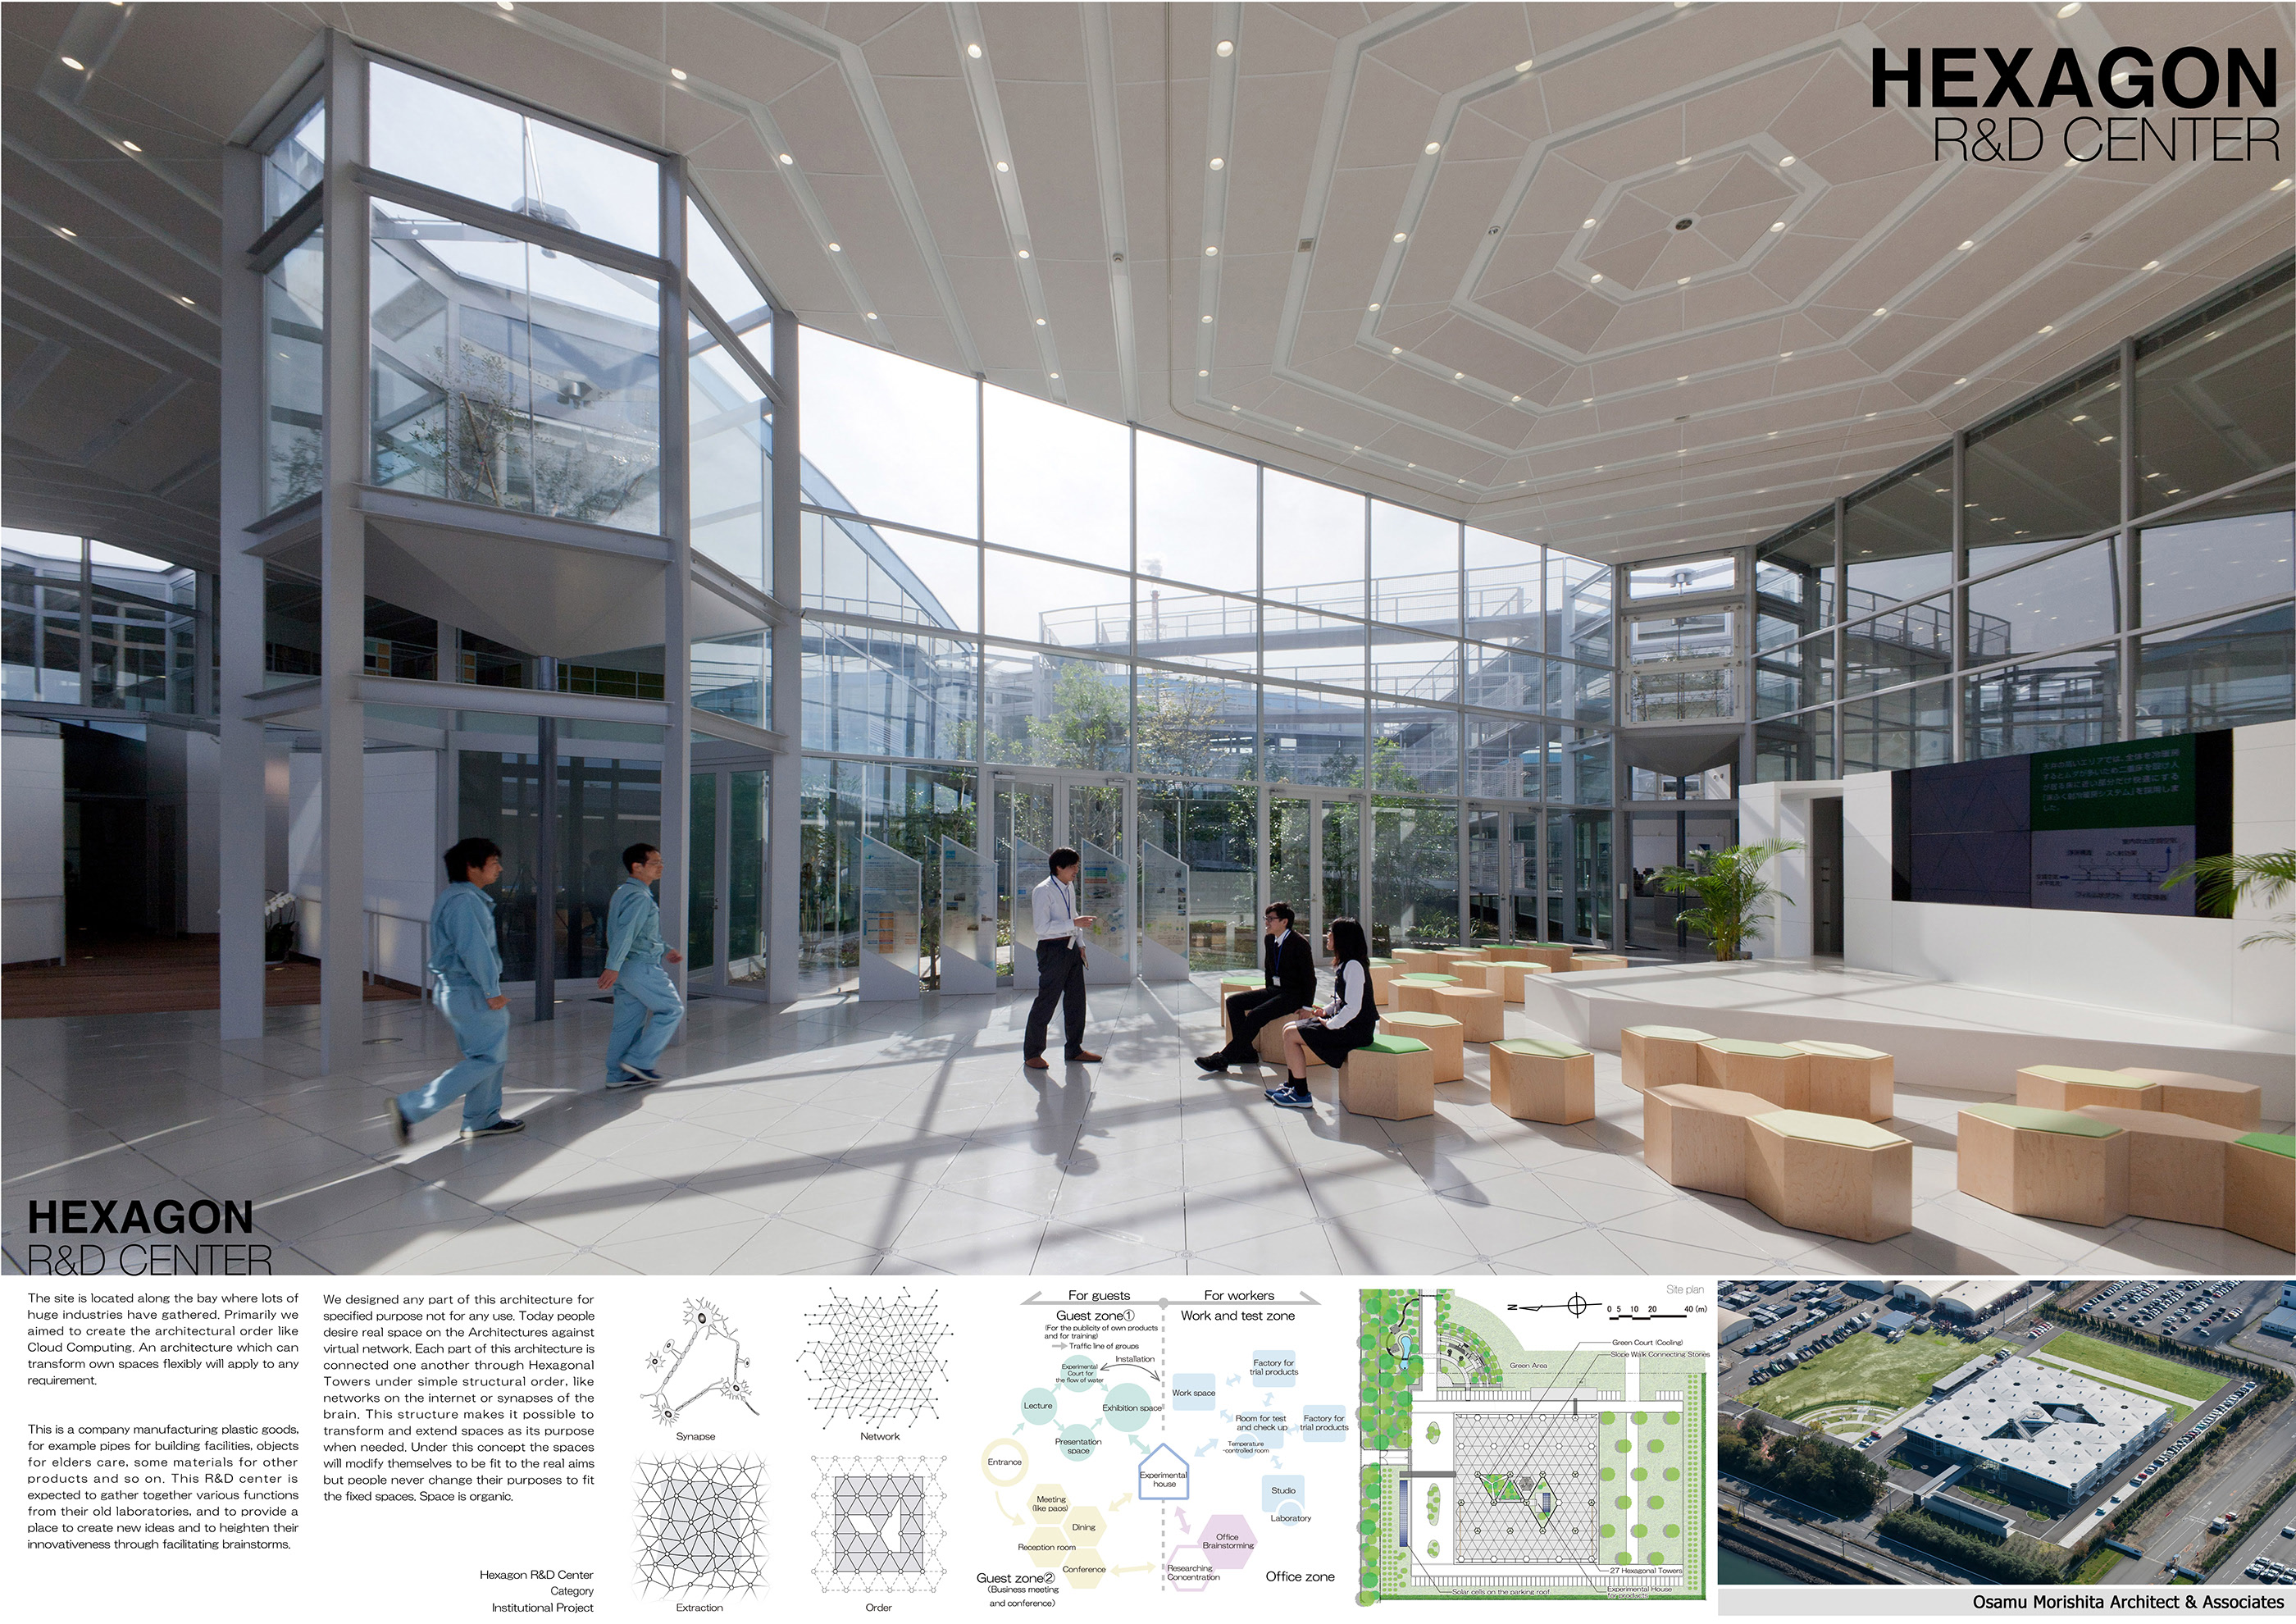 HEXAGON R&D CENTER on Behance